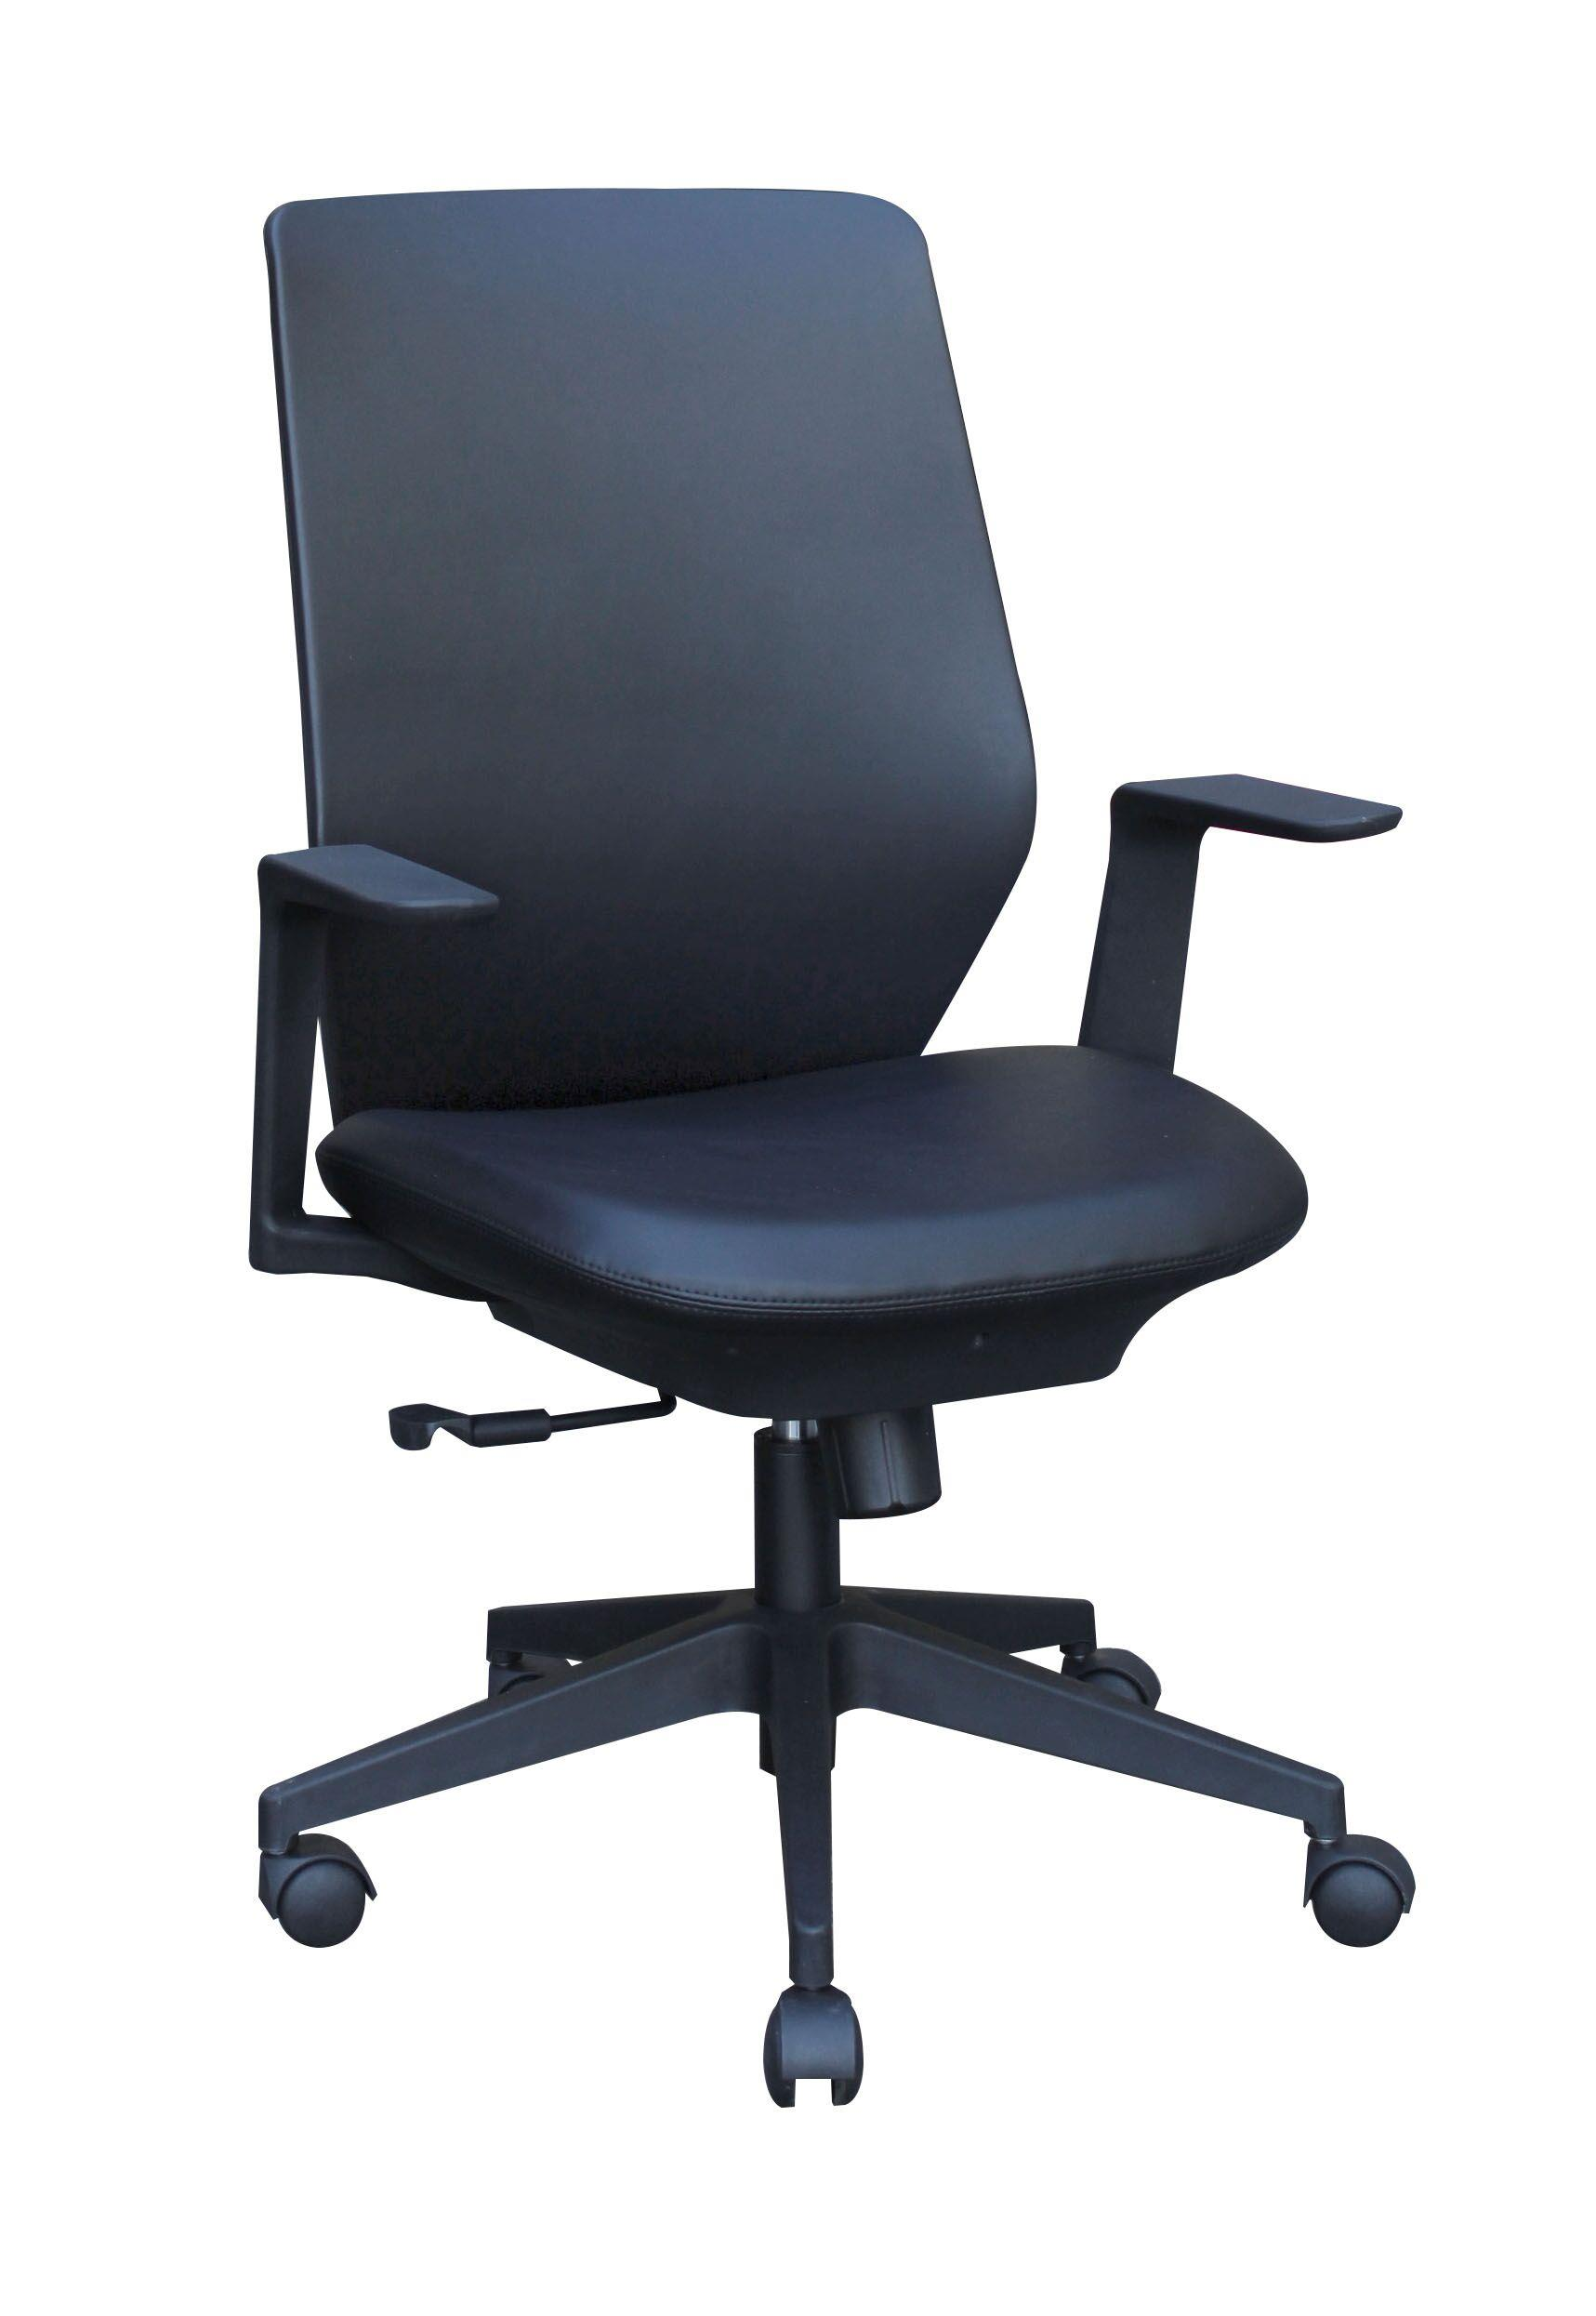 Elle Chair Office Furniture Store   Office Furnitures ...